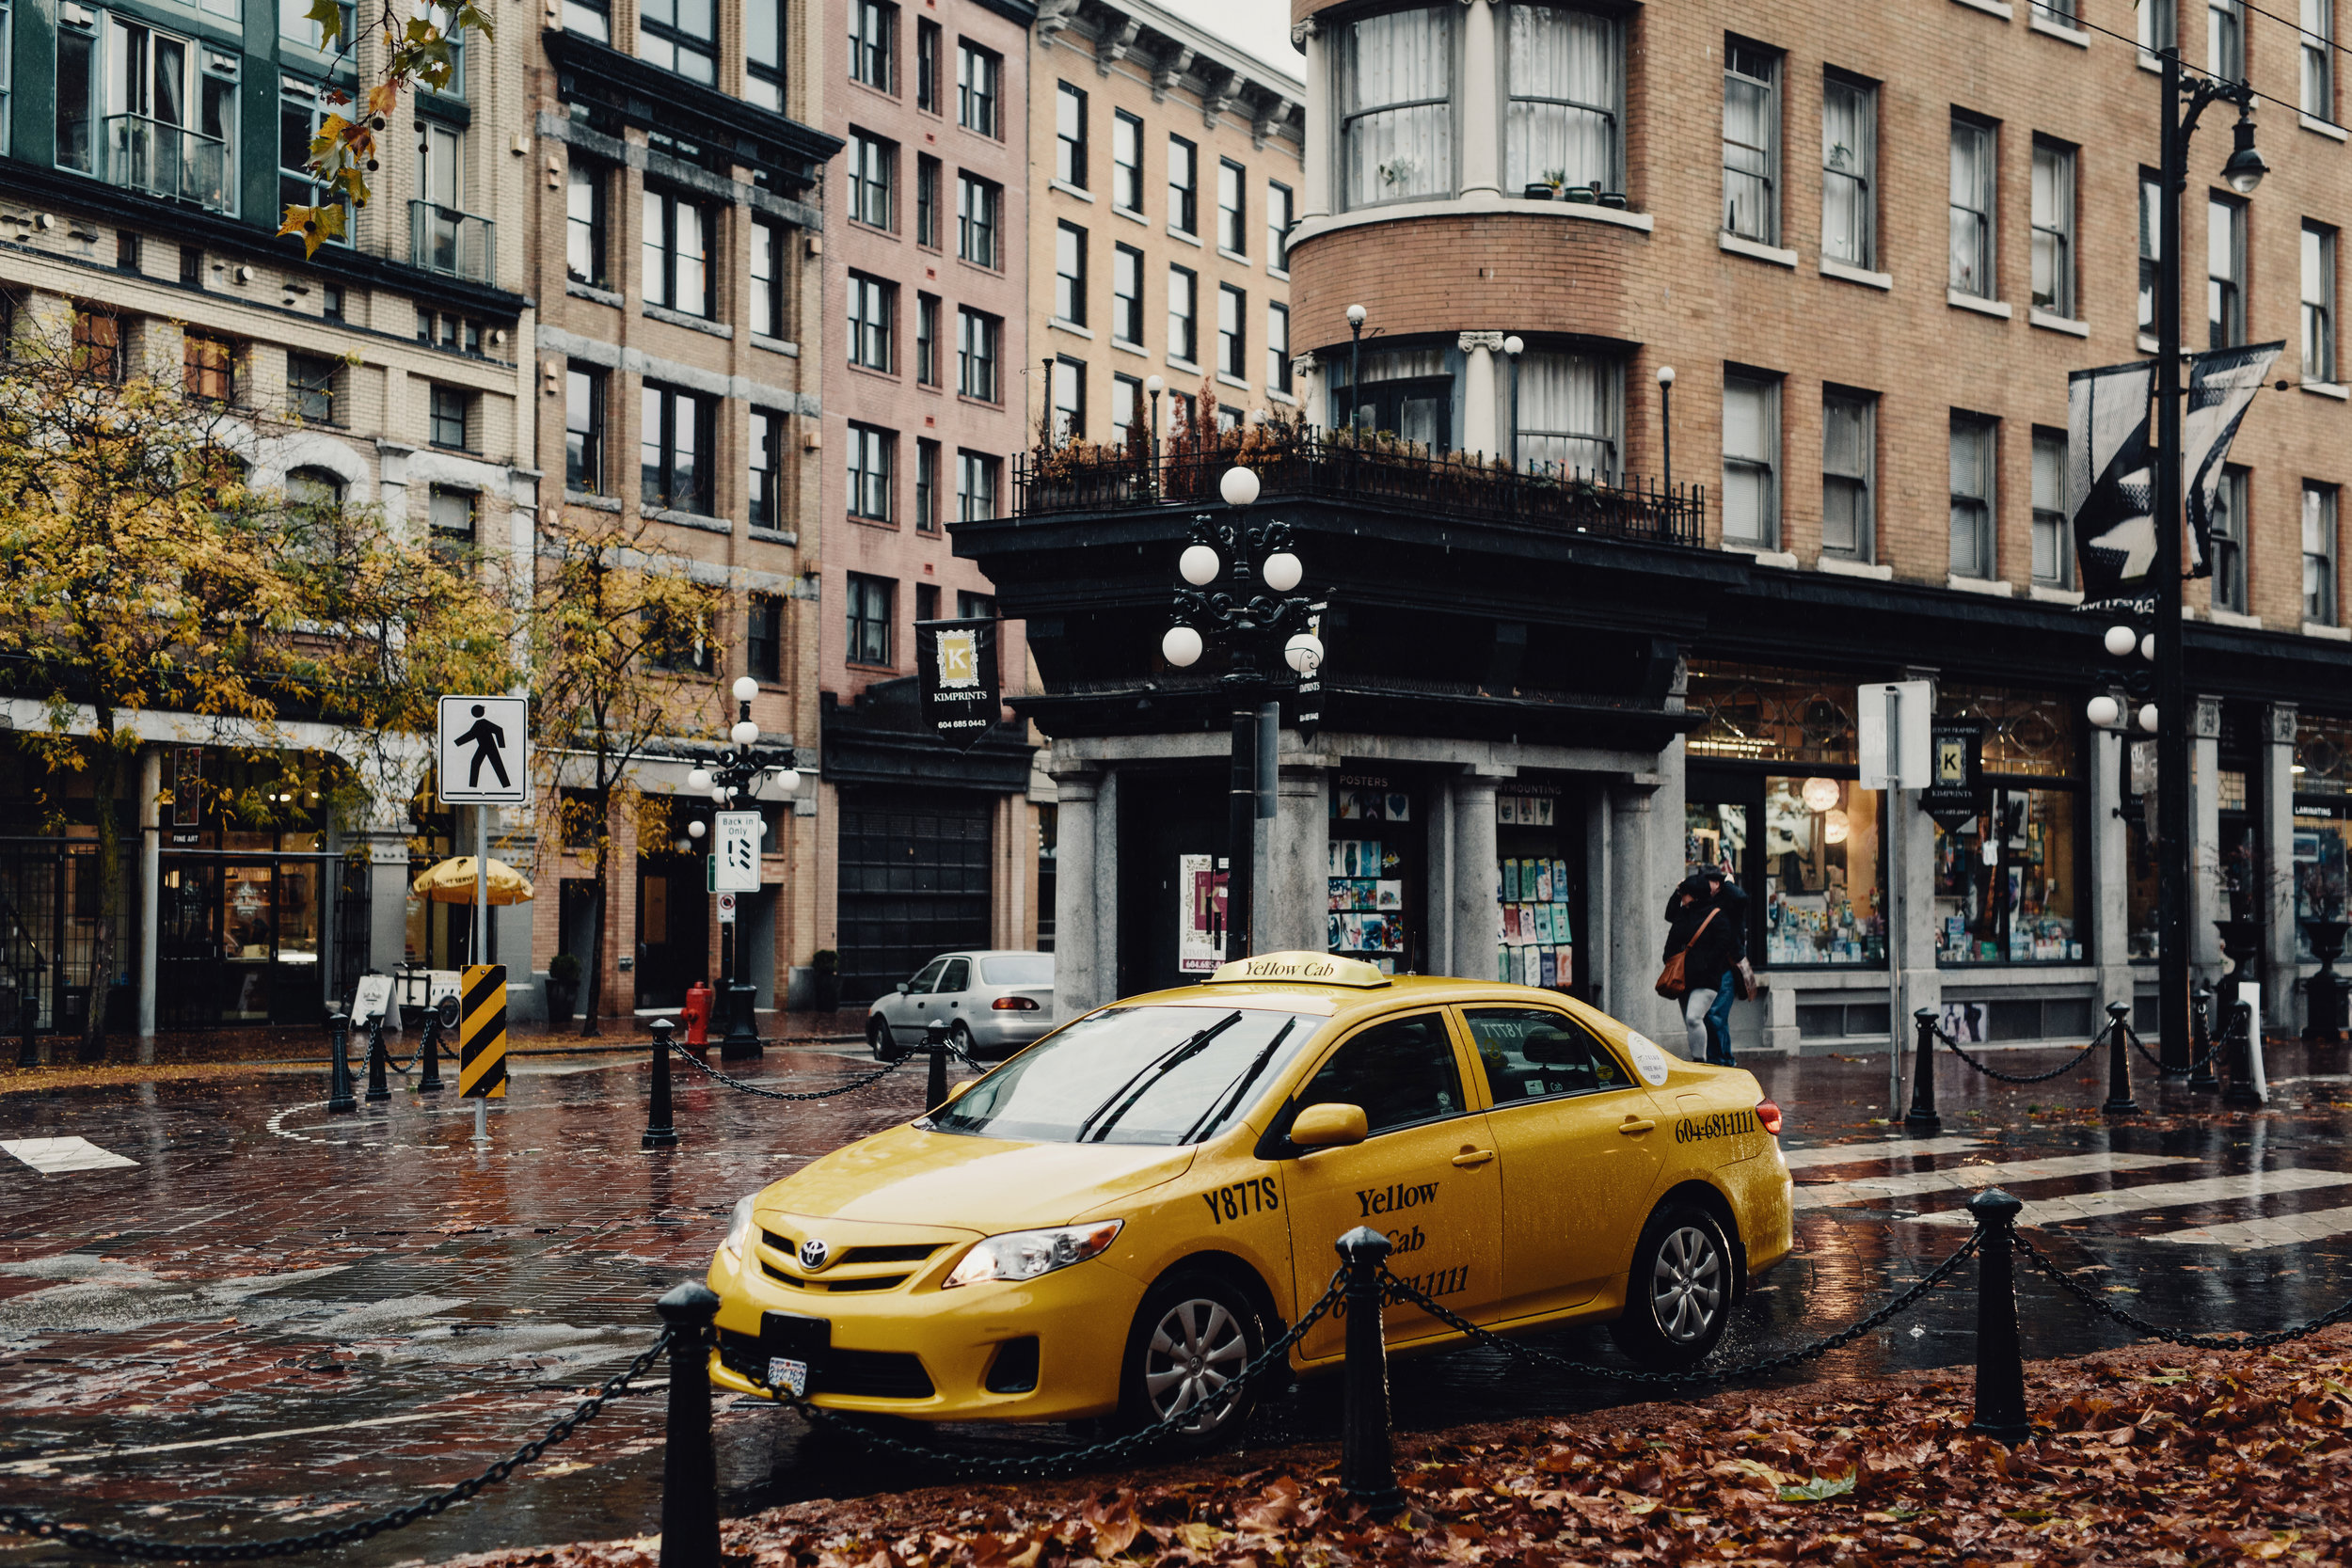 Yellow Taxi on the street in Gastown